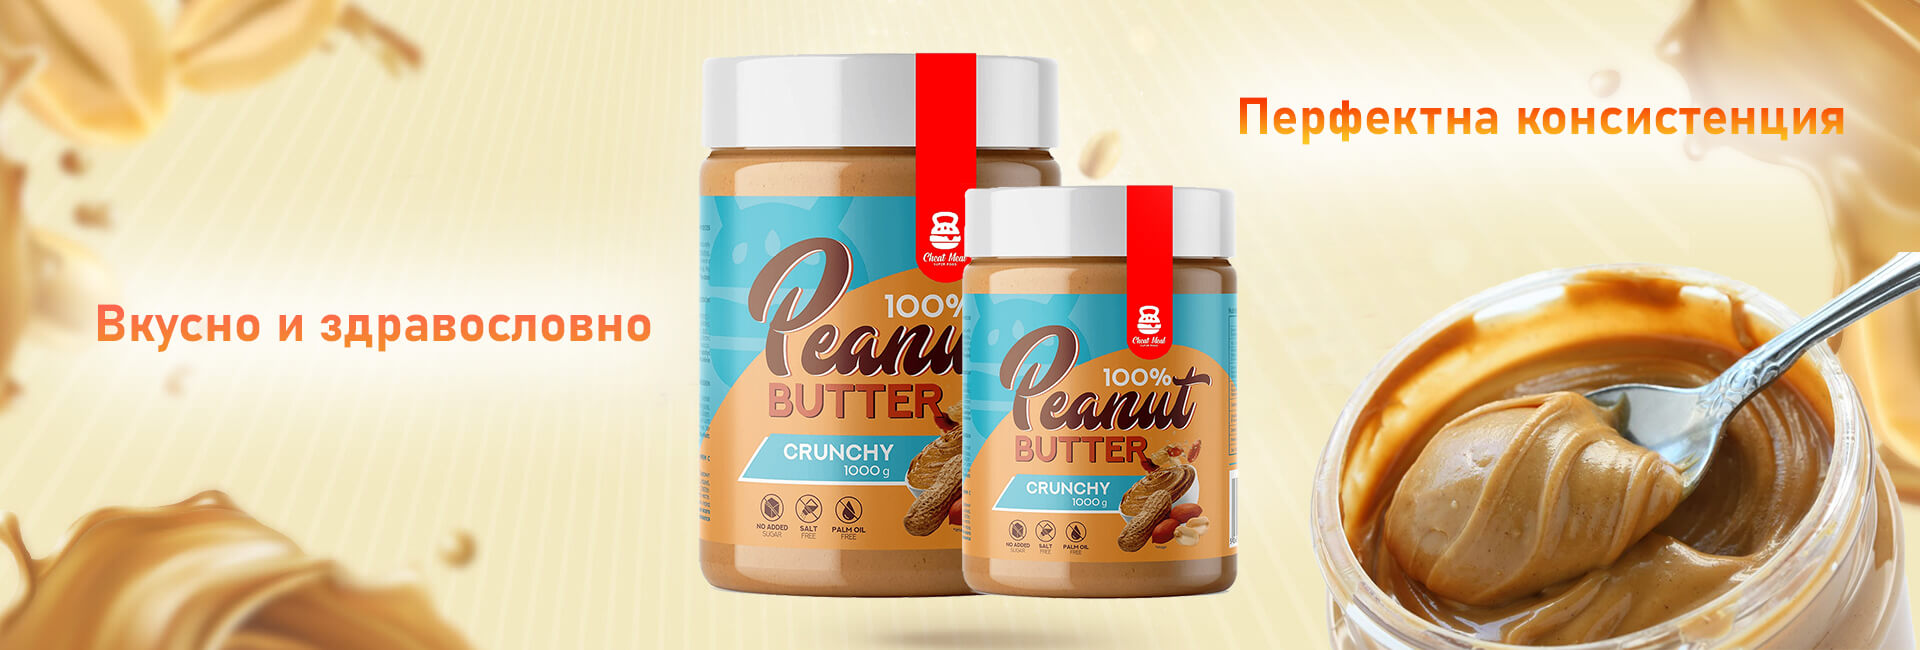 Cheat Meal Peanut butter